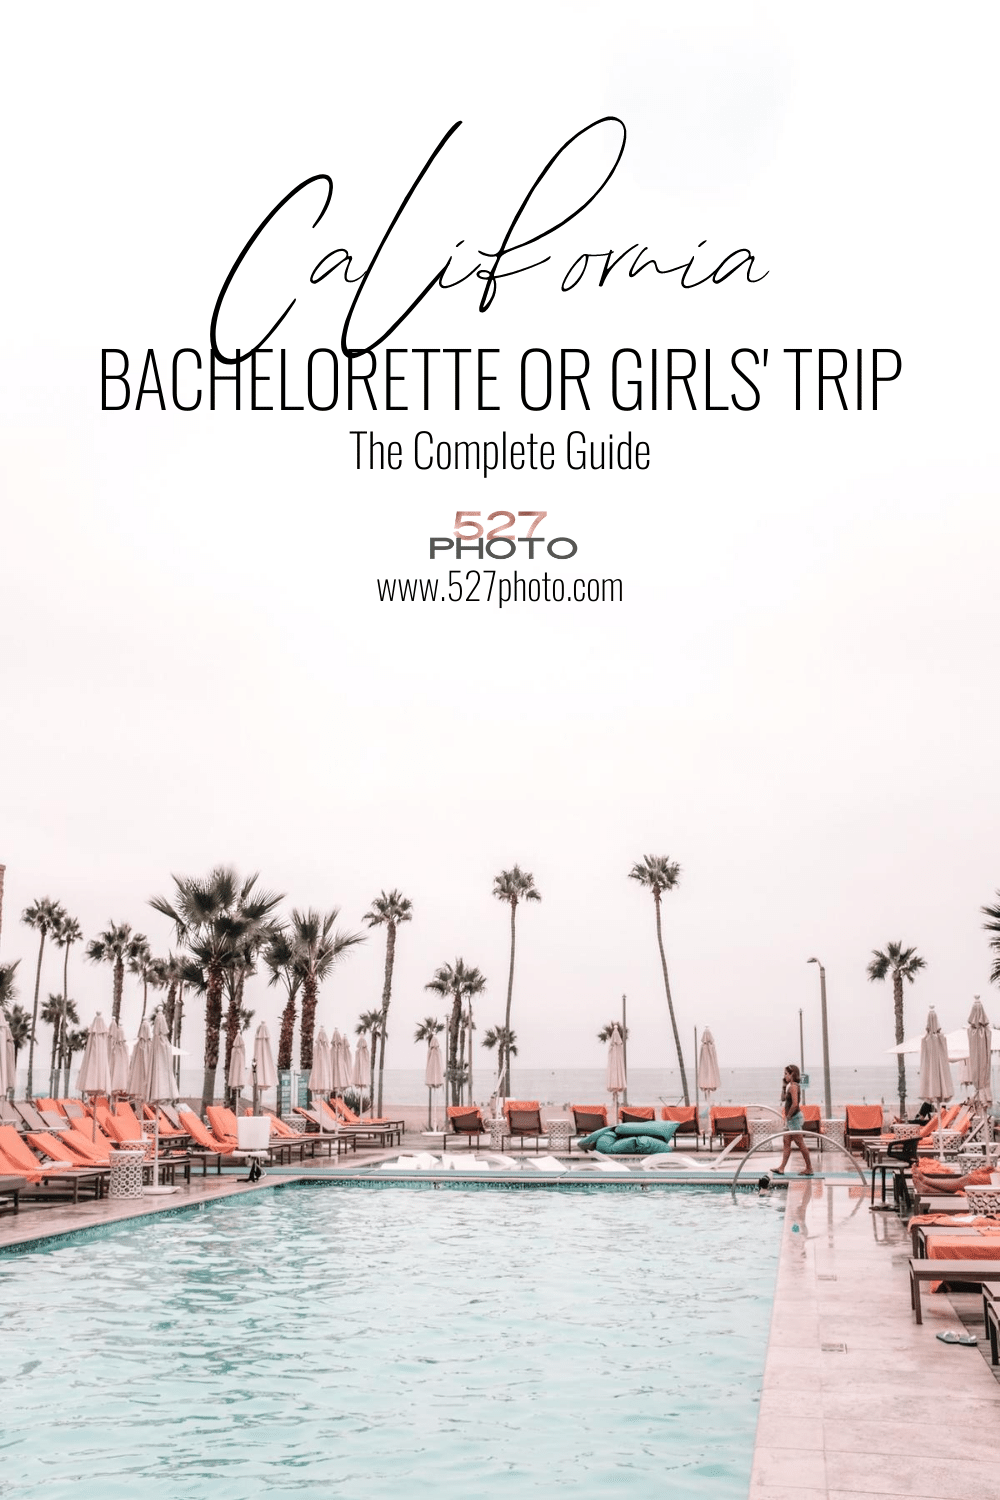 California bachelorette party and girls trip idea